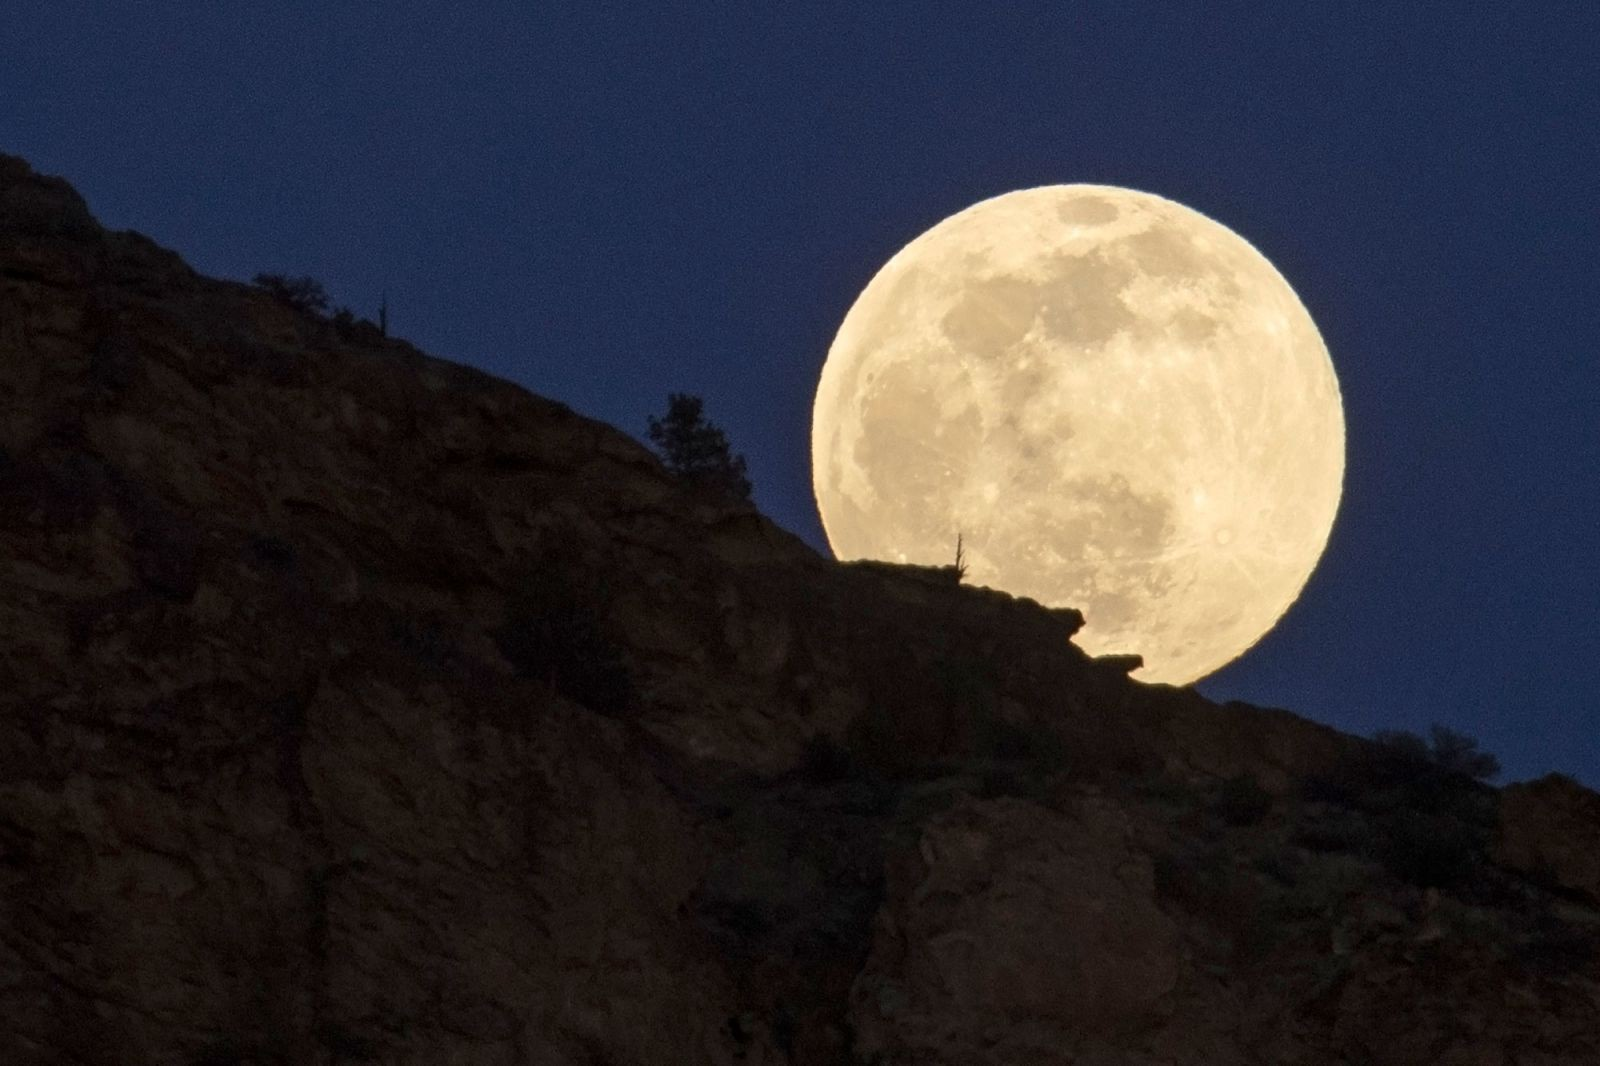 The moon rises in Smith Rock Park in Oregon. Image by Ted S Warren/AP